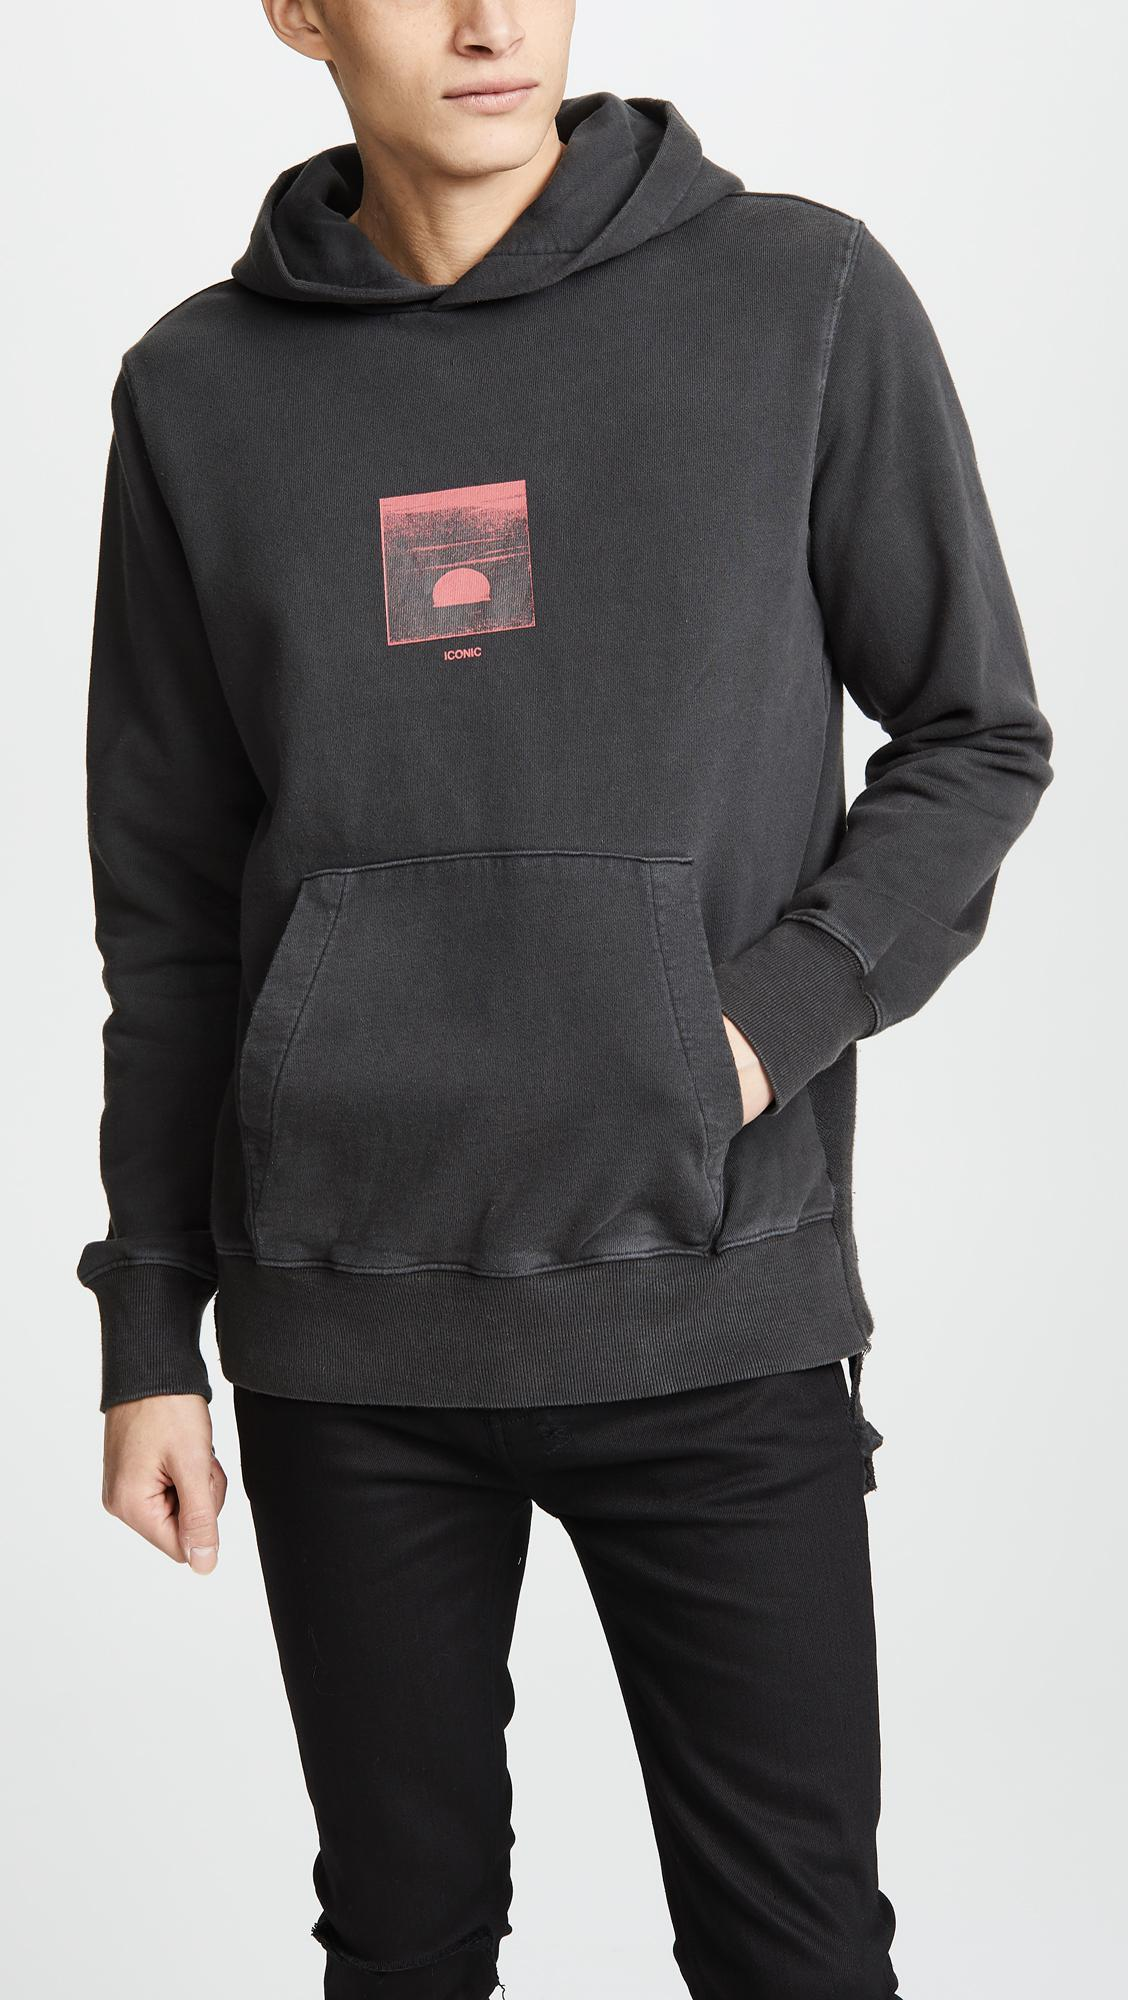 14 Hoodie To Lyst Iconic Ksubi Black Back In Save Men For pTzqn